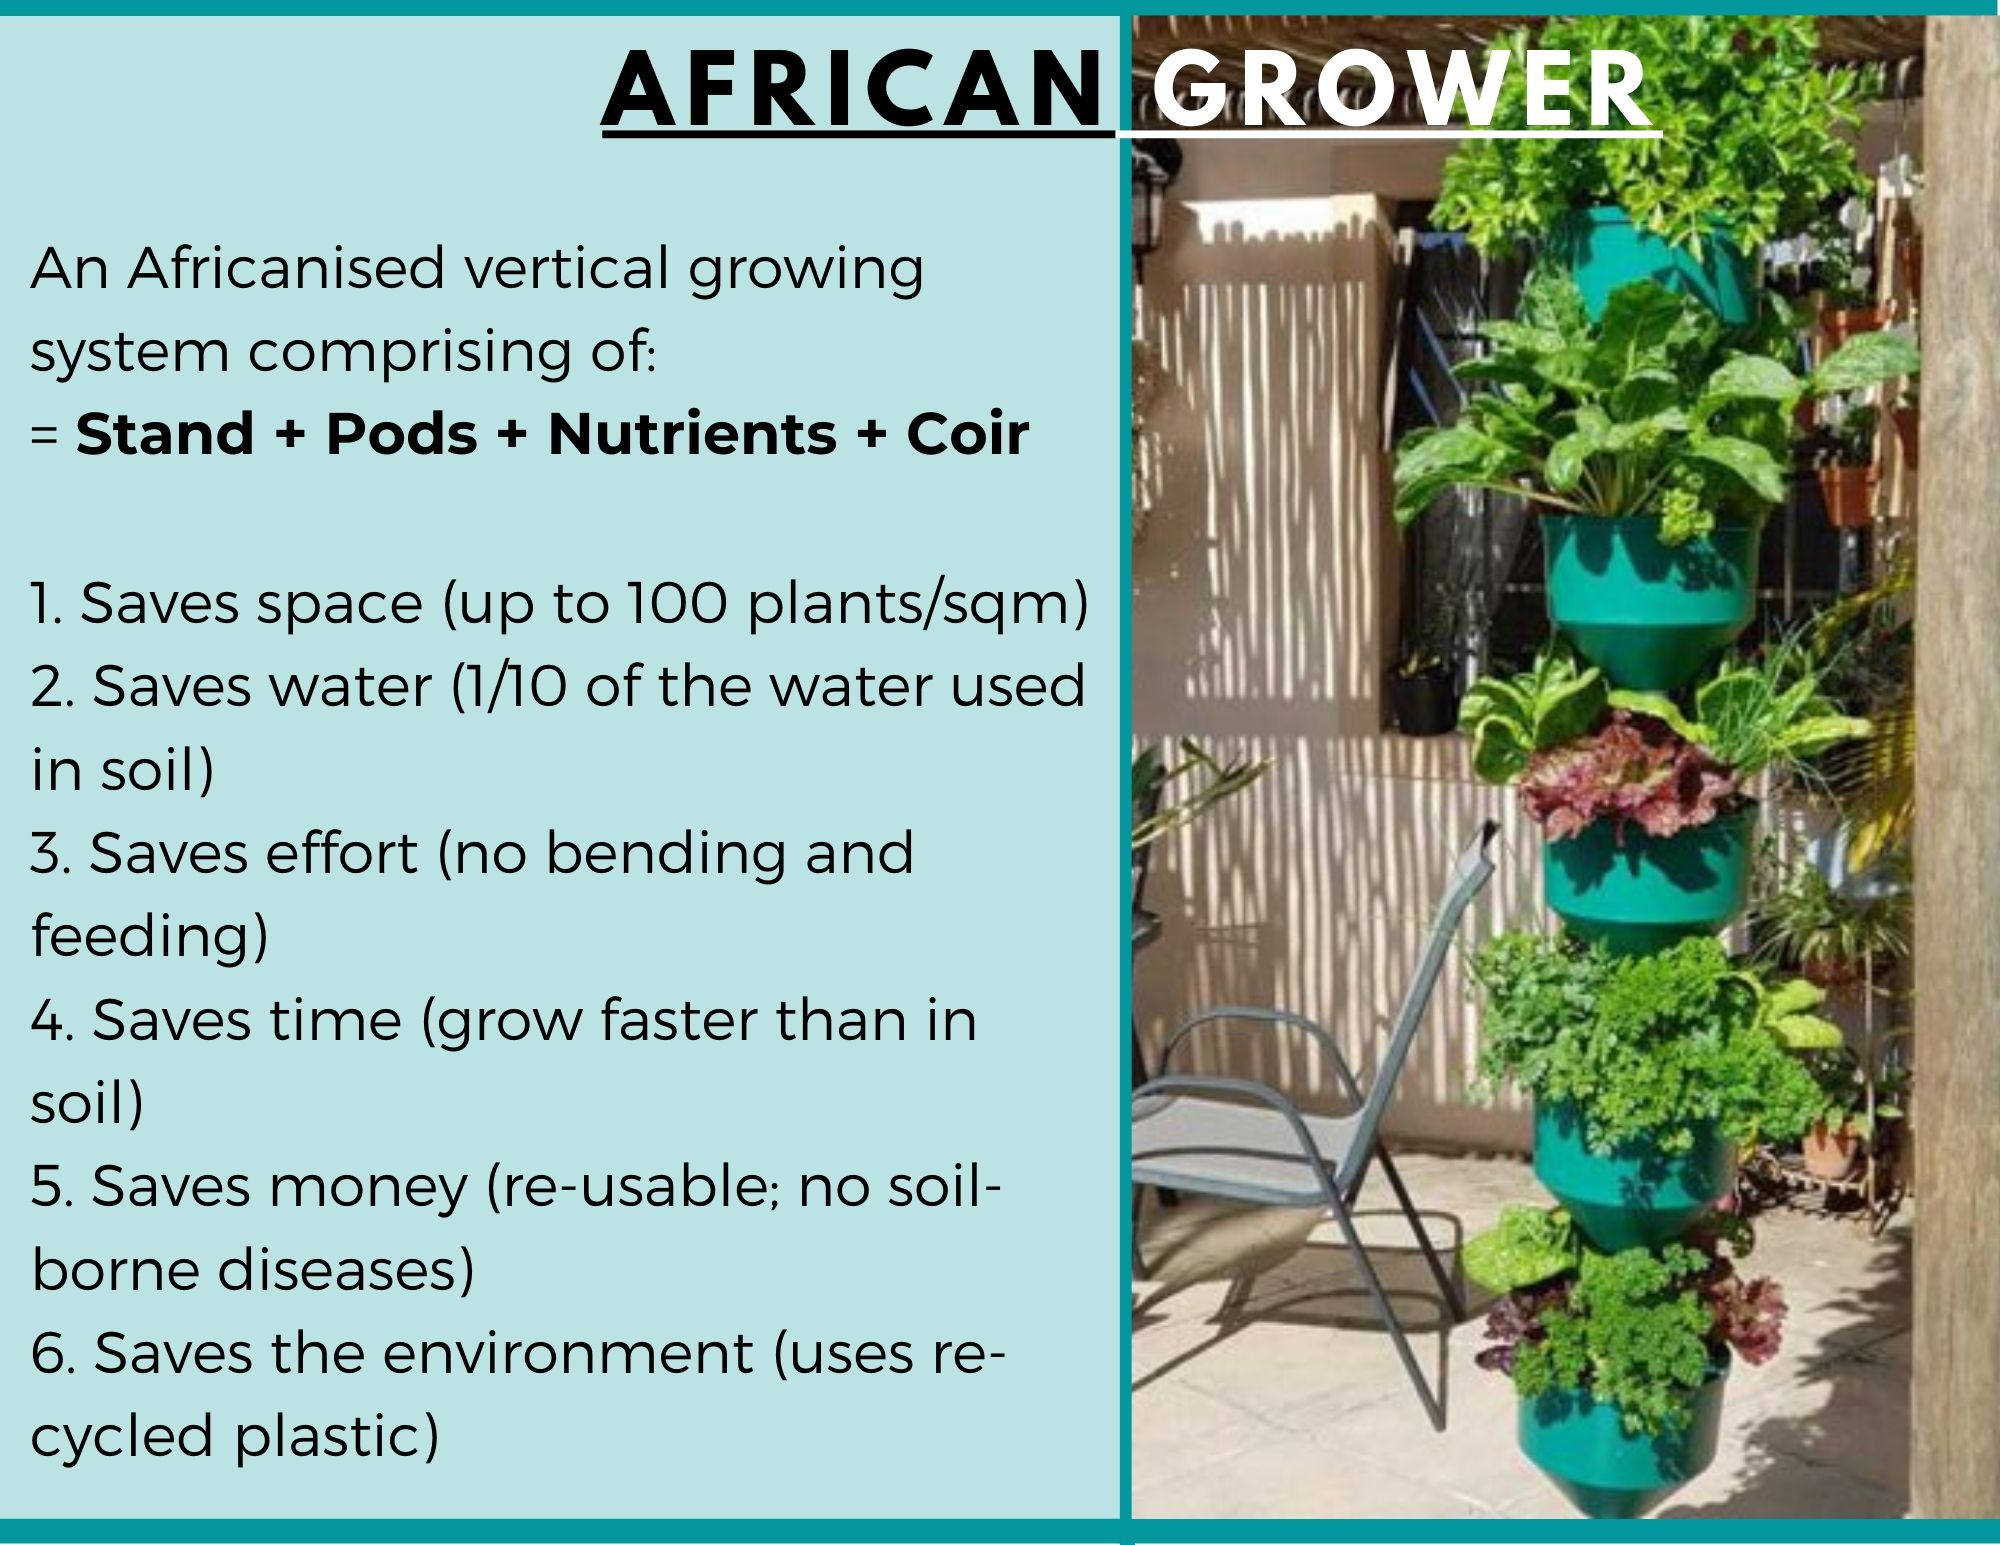 African Grower - fact sheet